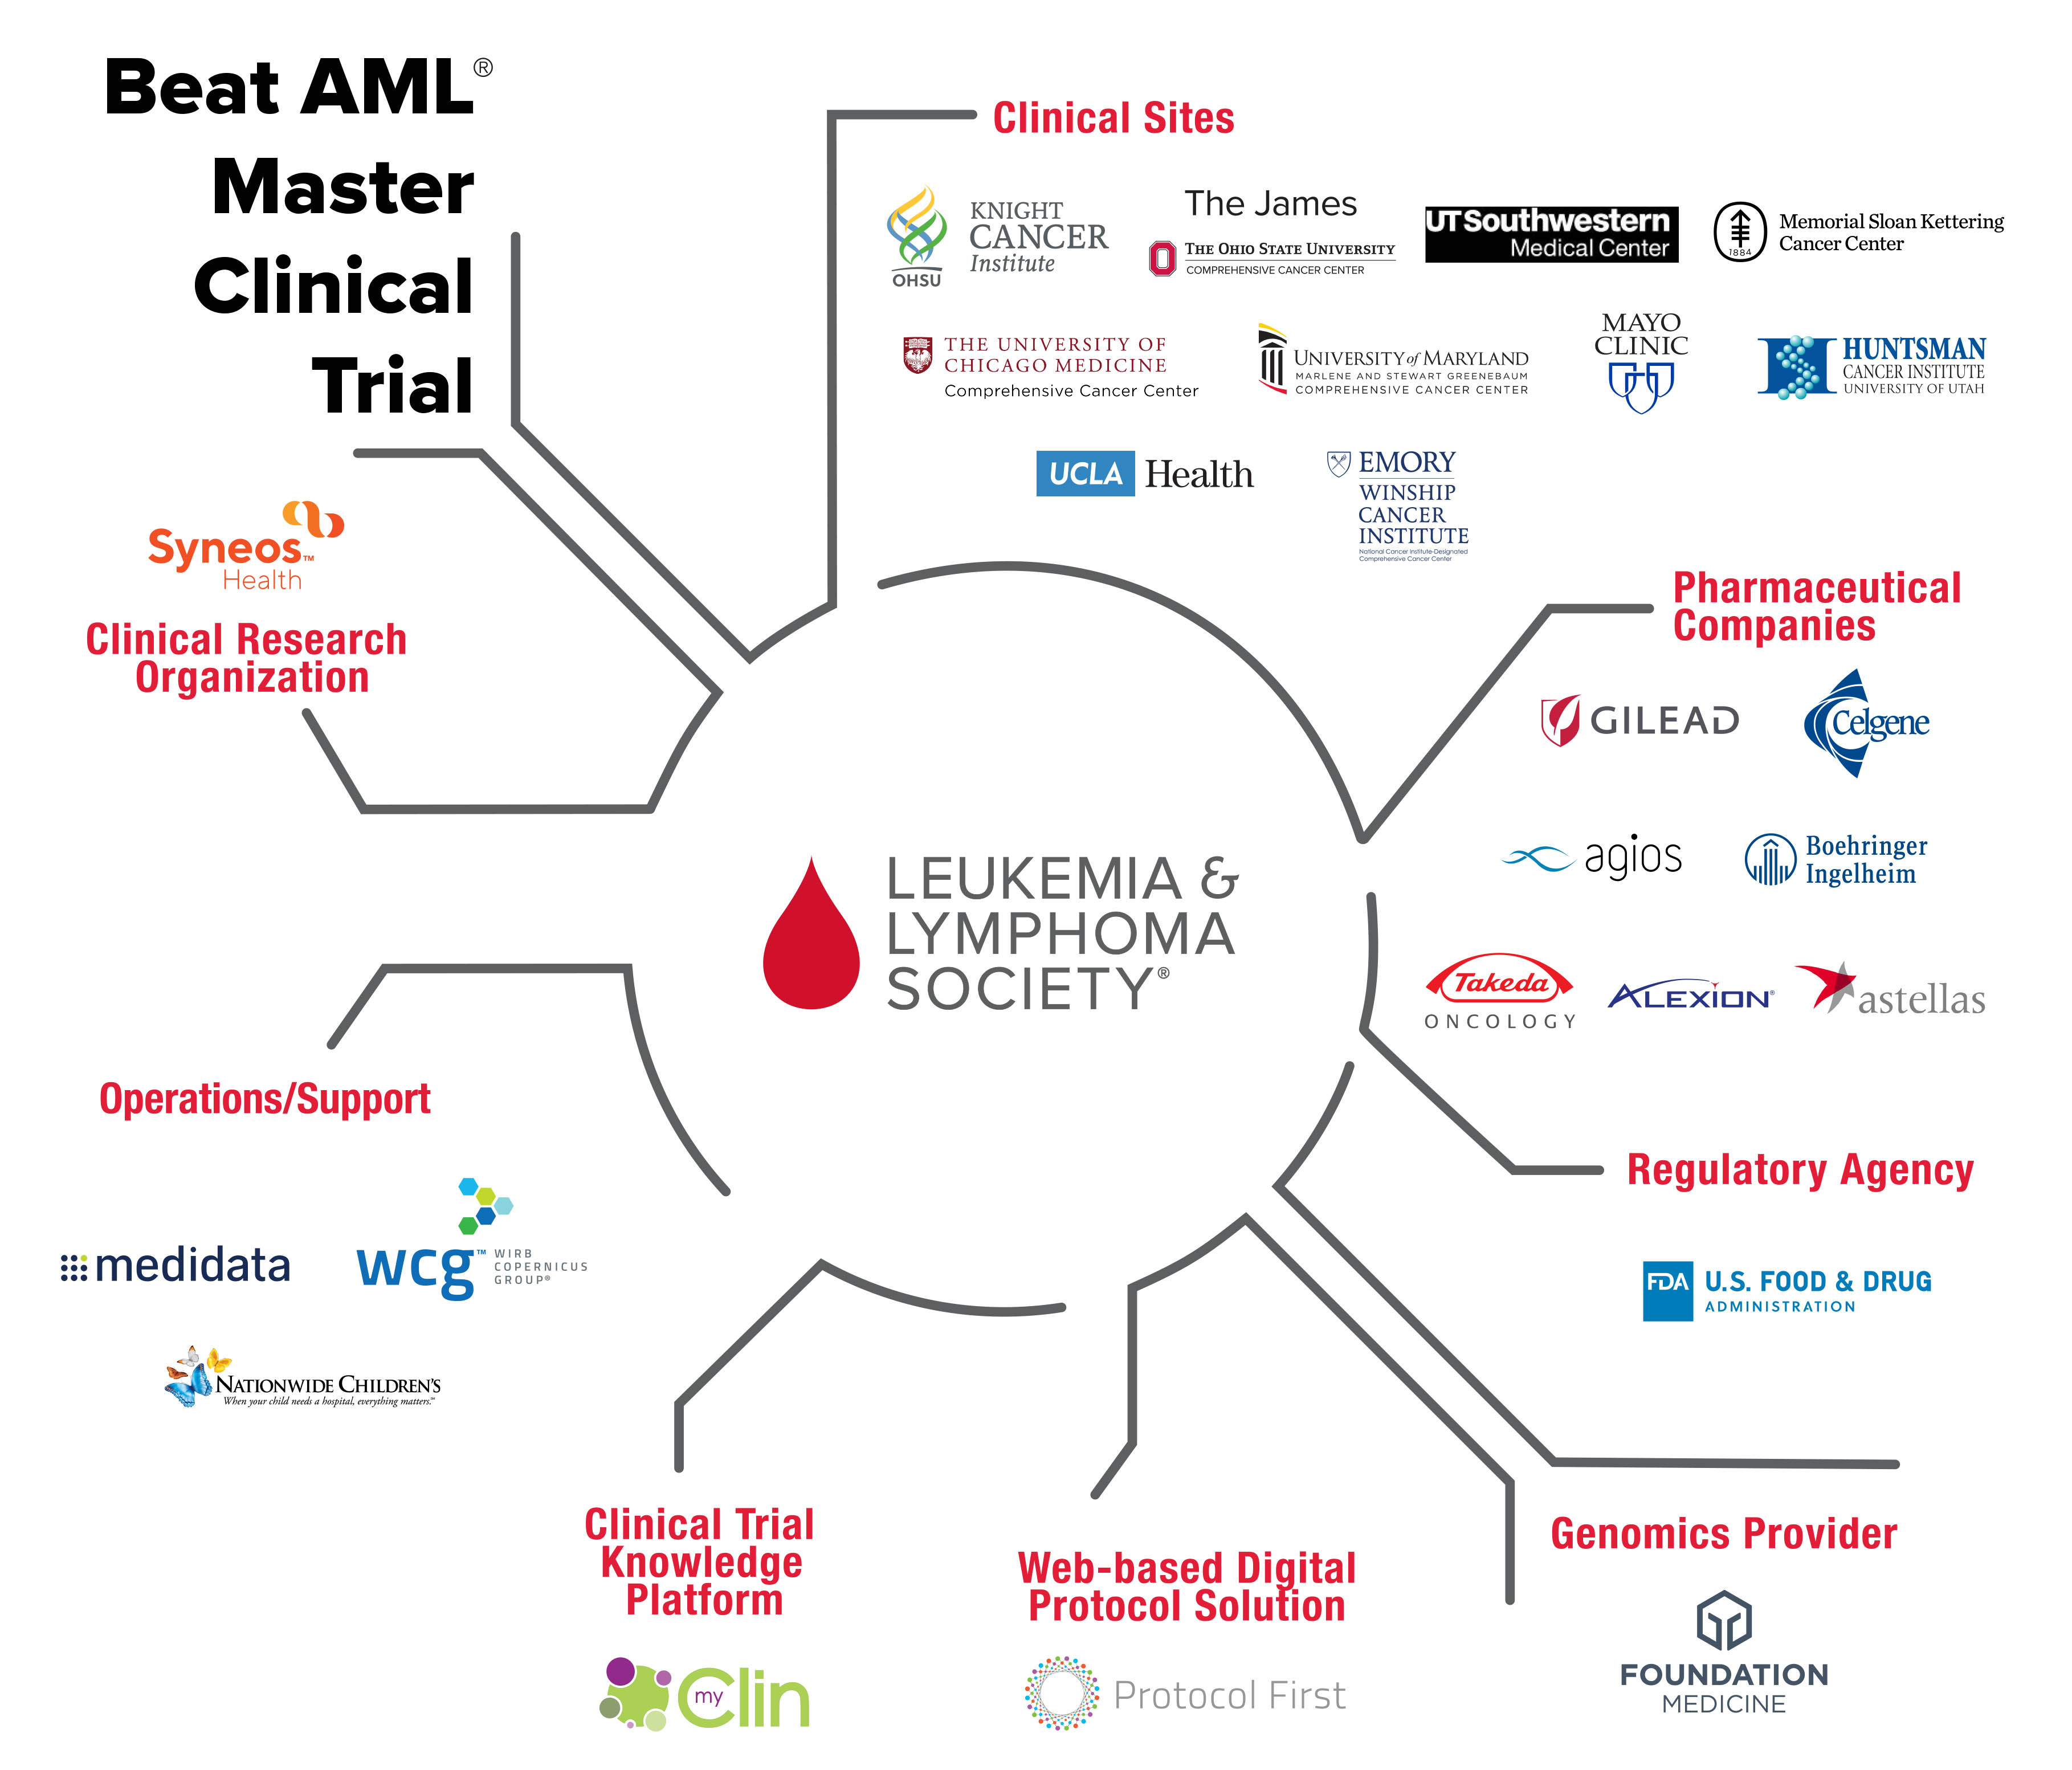 Winship Cancer Institute of Emory University Joins Beat AML